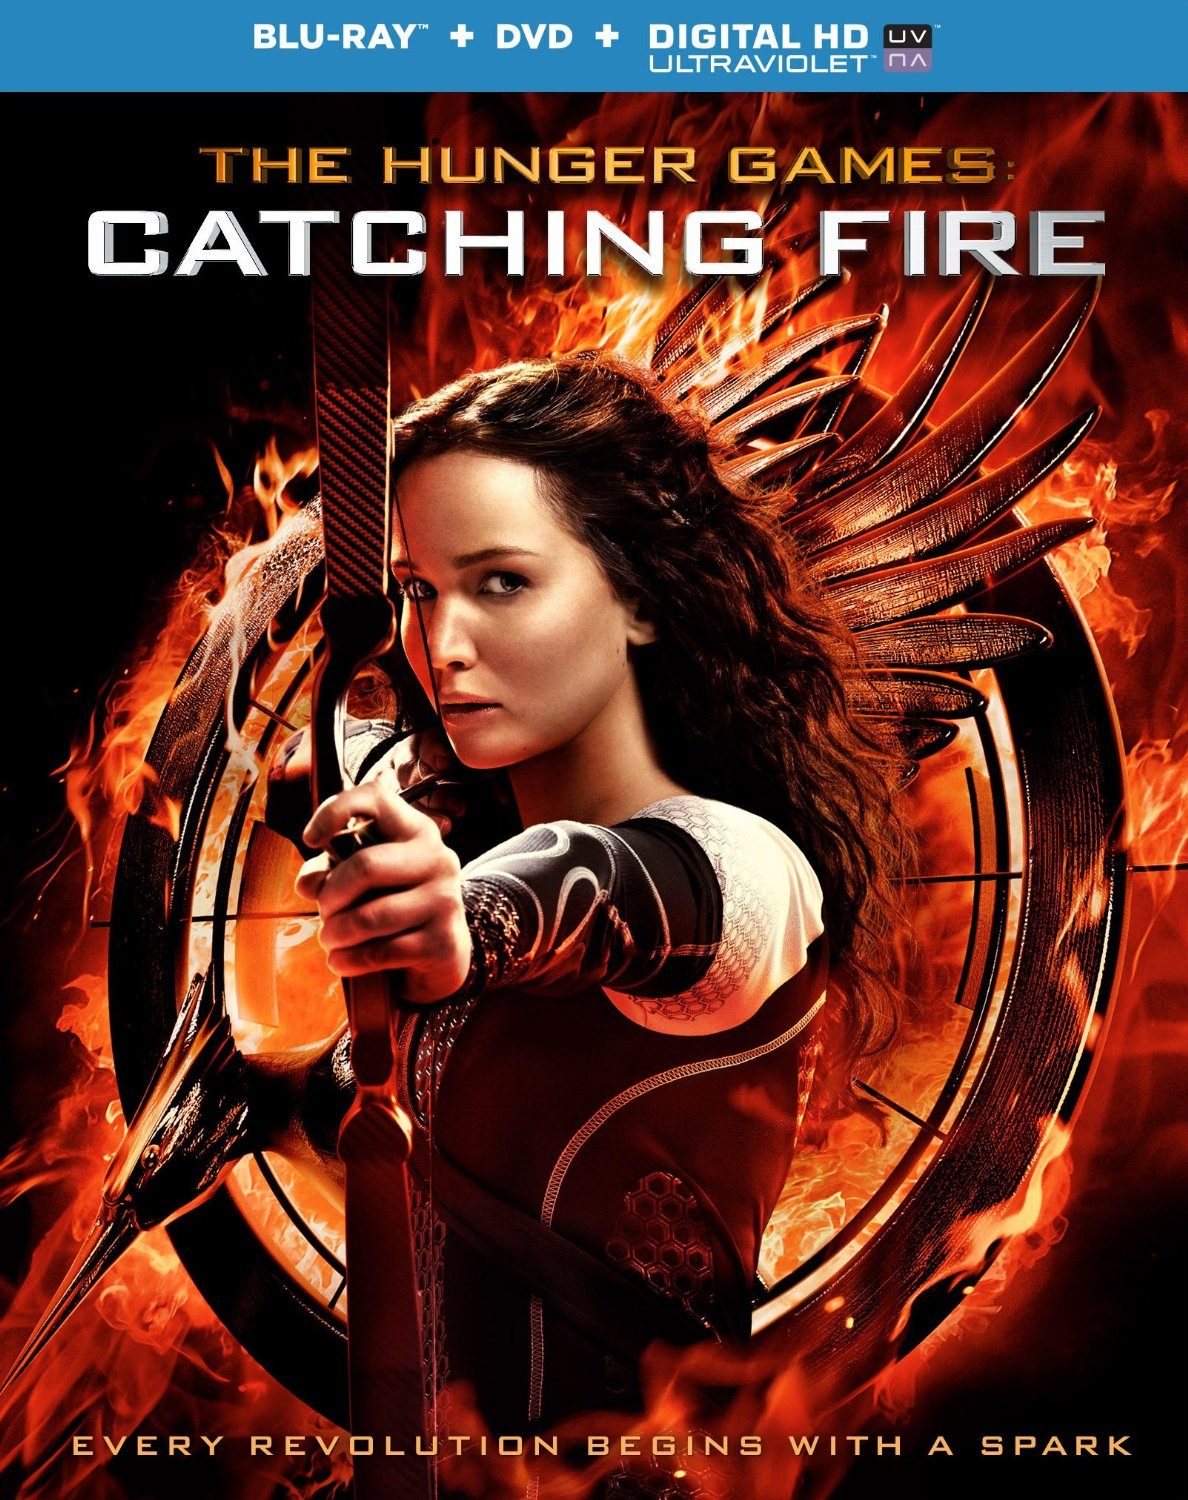 catching fire bd New on DVD/Blu ray: 12 Years a Slave and The Hunger Games: Catching Fire Both Hit Home